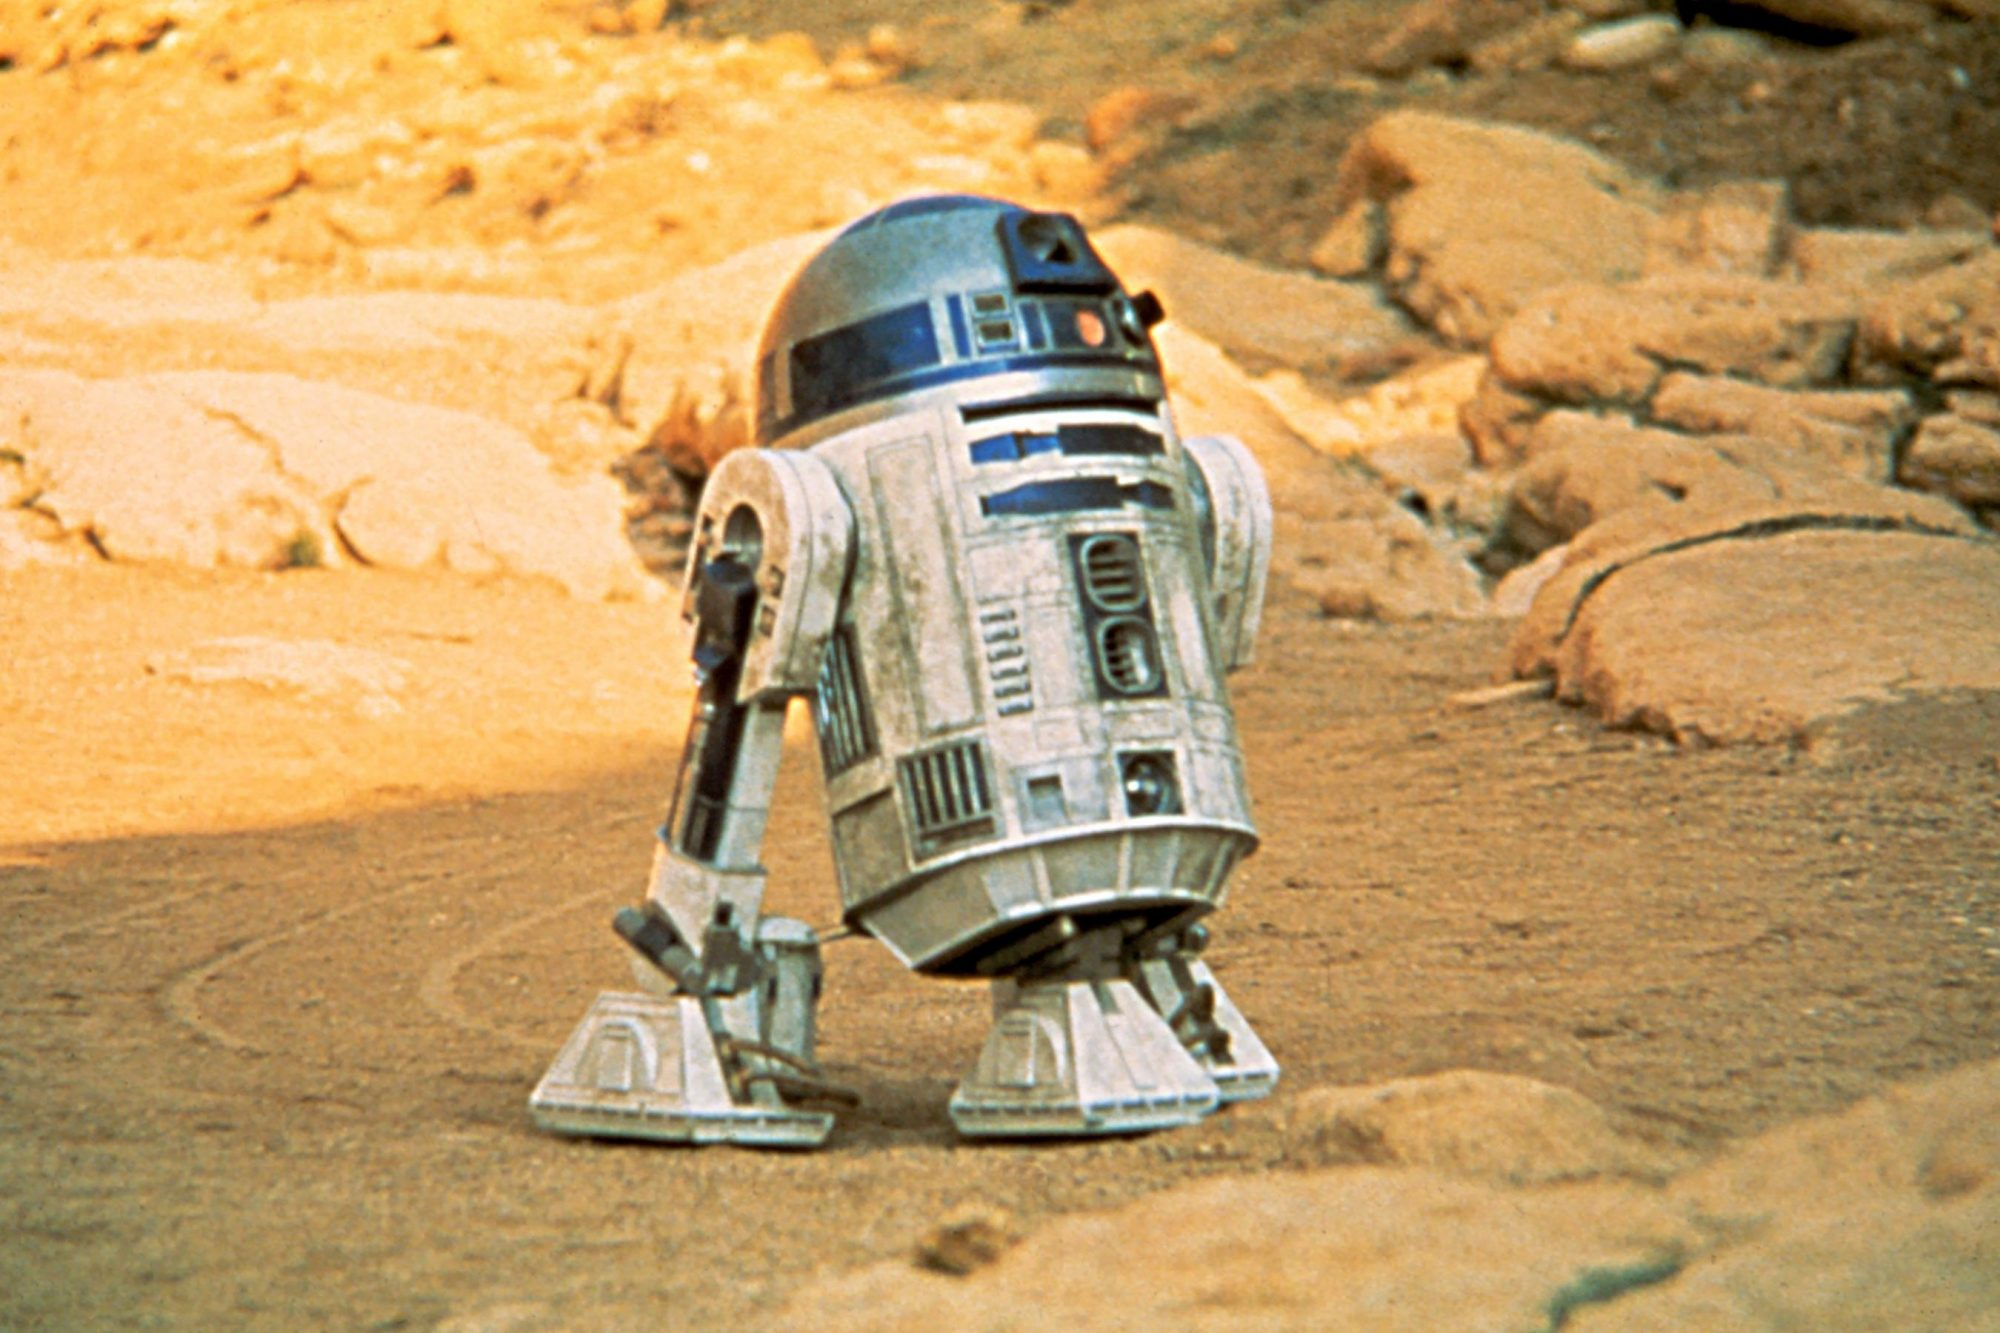 STAR WARS, (aka STAR WARS: EPISODE IV - A NEW HOPE), R2-D2, 1977